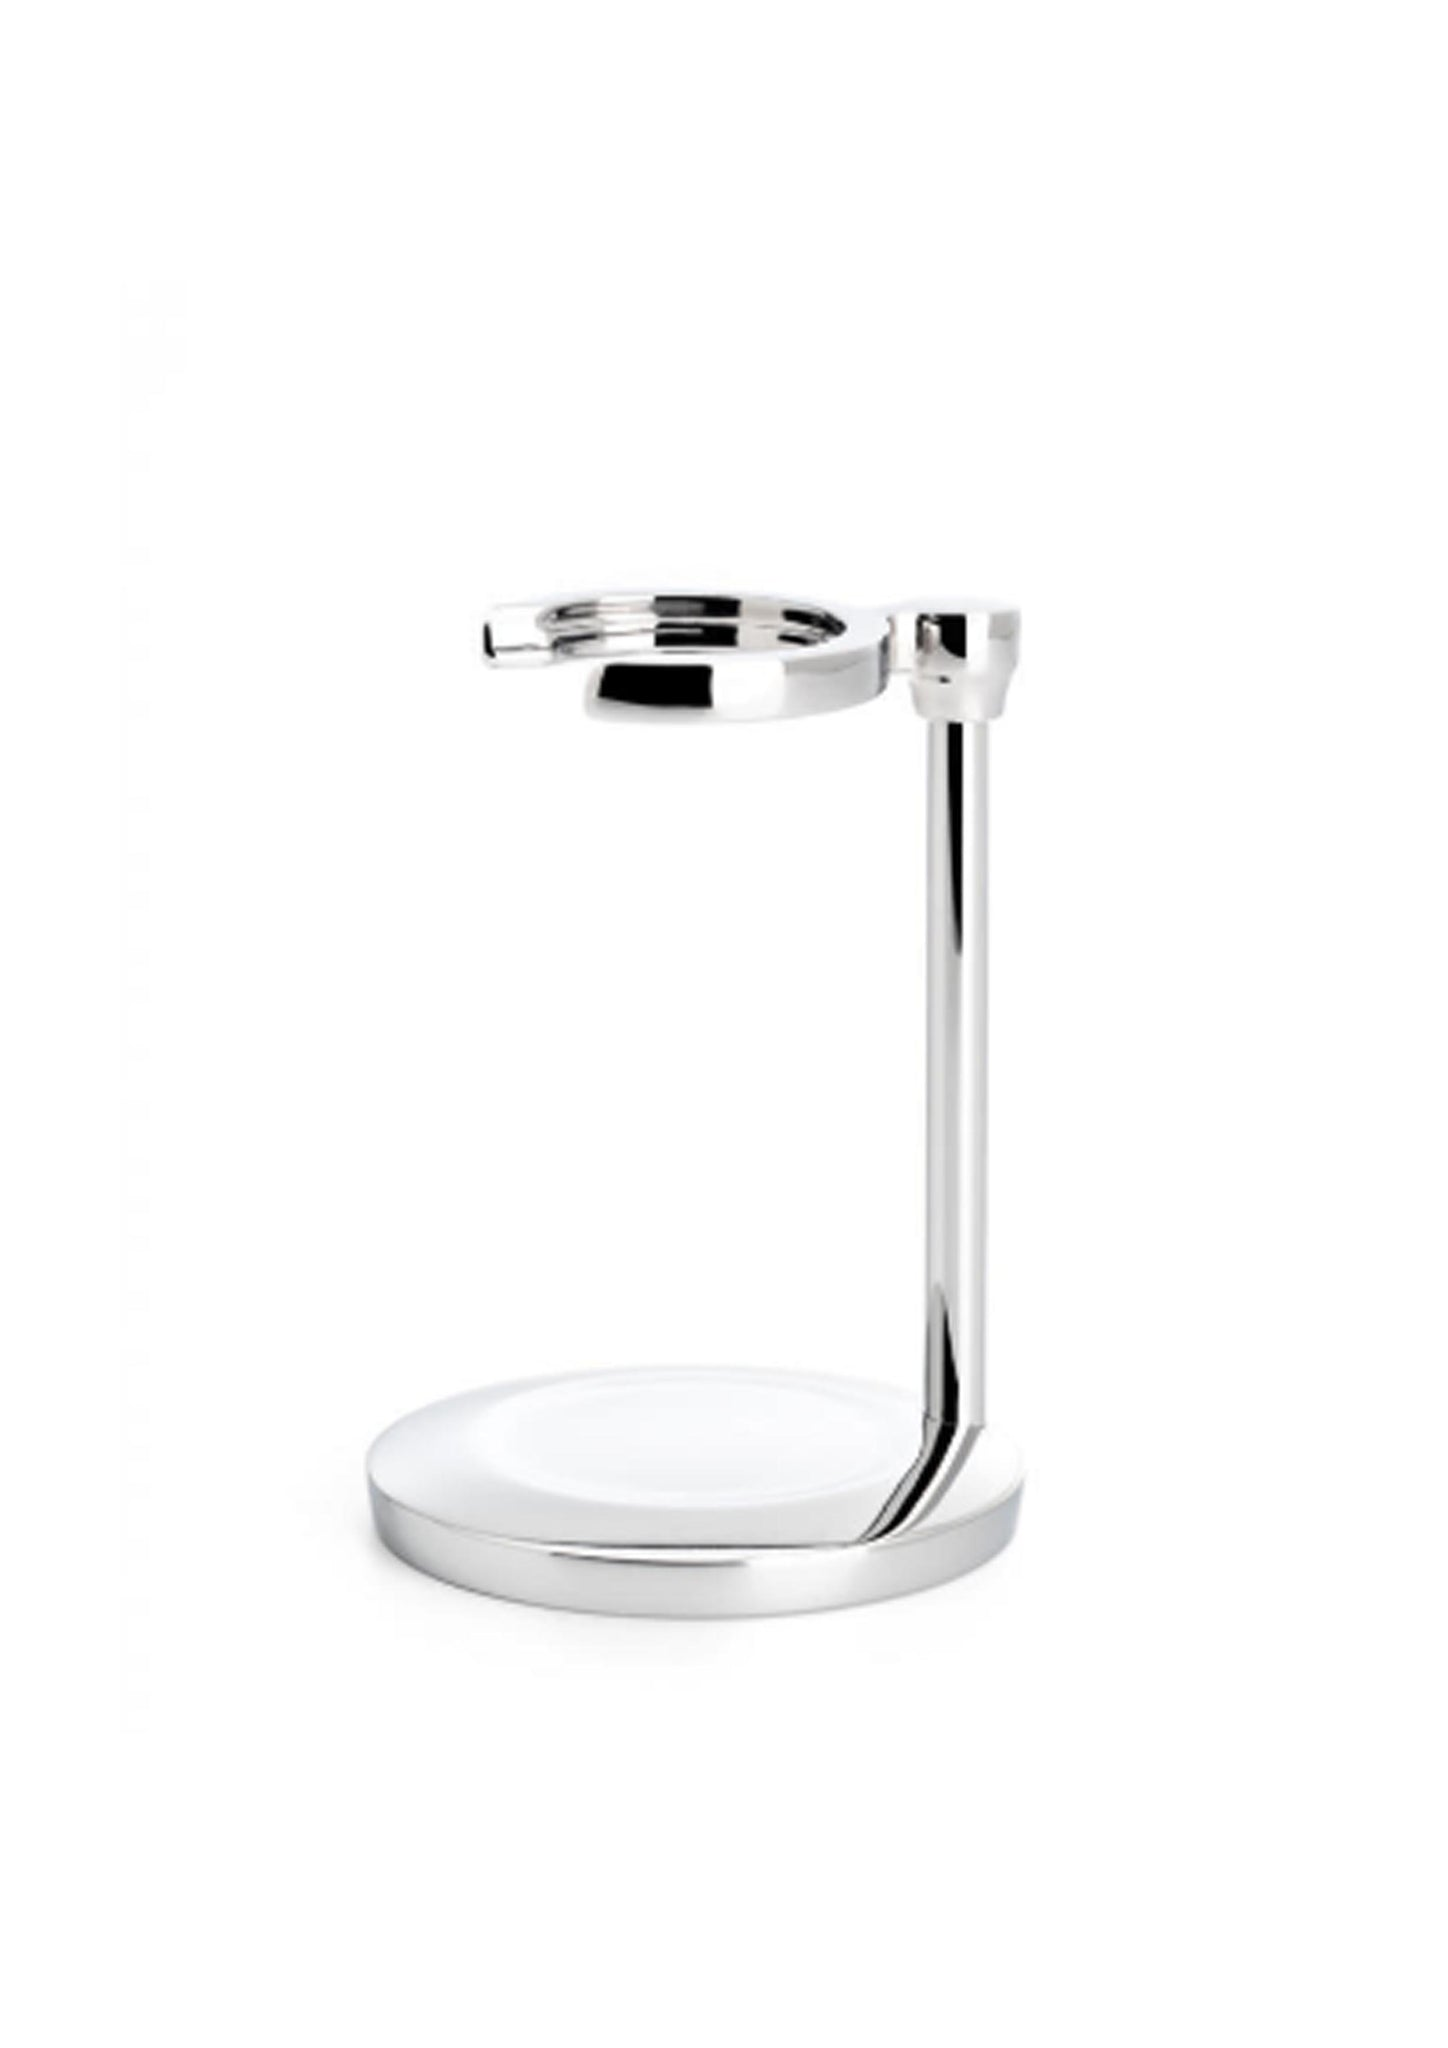 Muhle, CHROME SHAVING BRUSH STAND FOR PURIST SERIES RHM50RP Single Stand